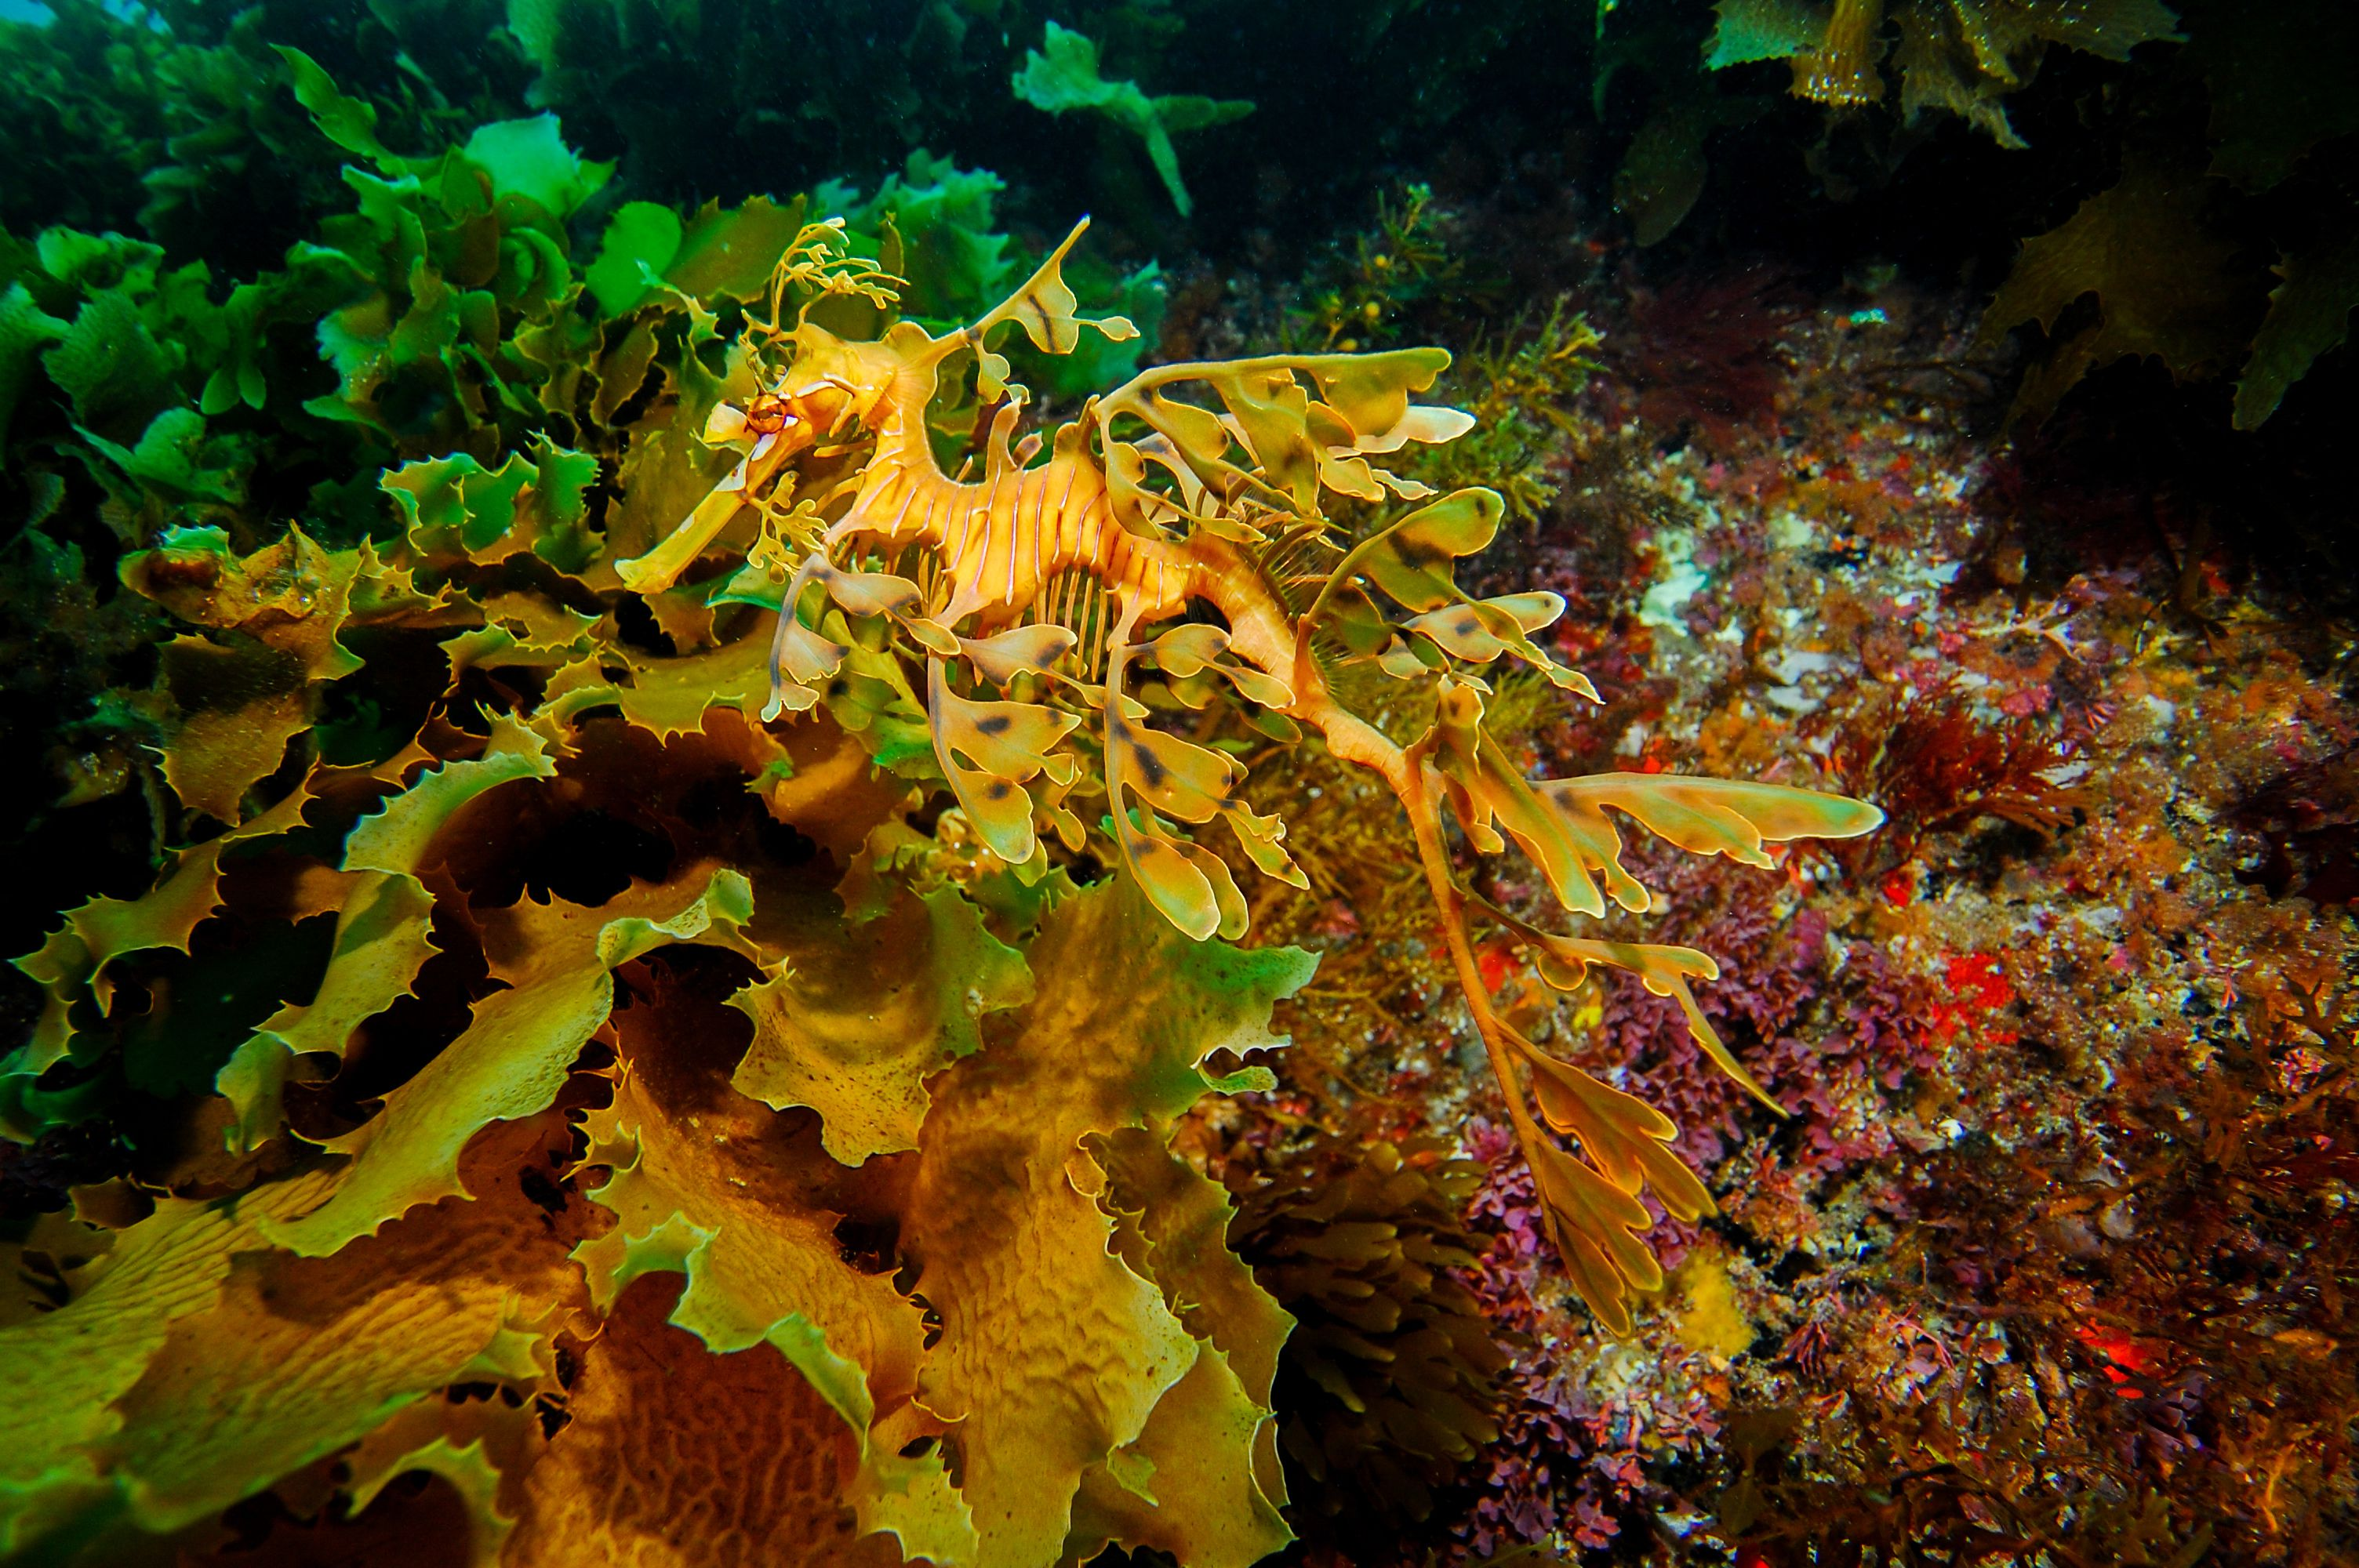 Leafy protrusions and the ability to change color make the leafy sea dragon nearly invisible against its surroundings.